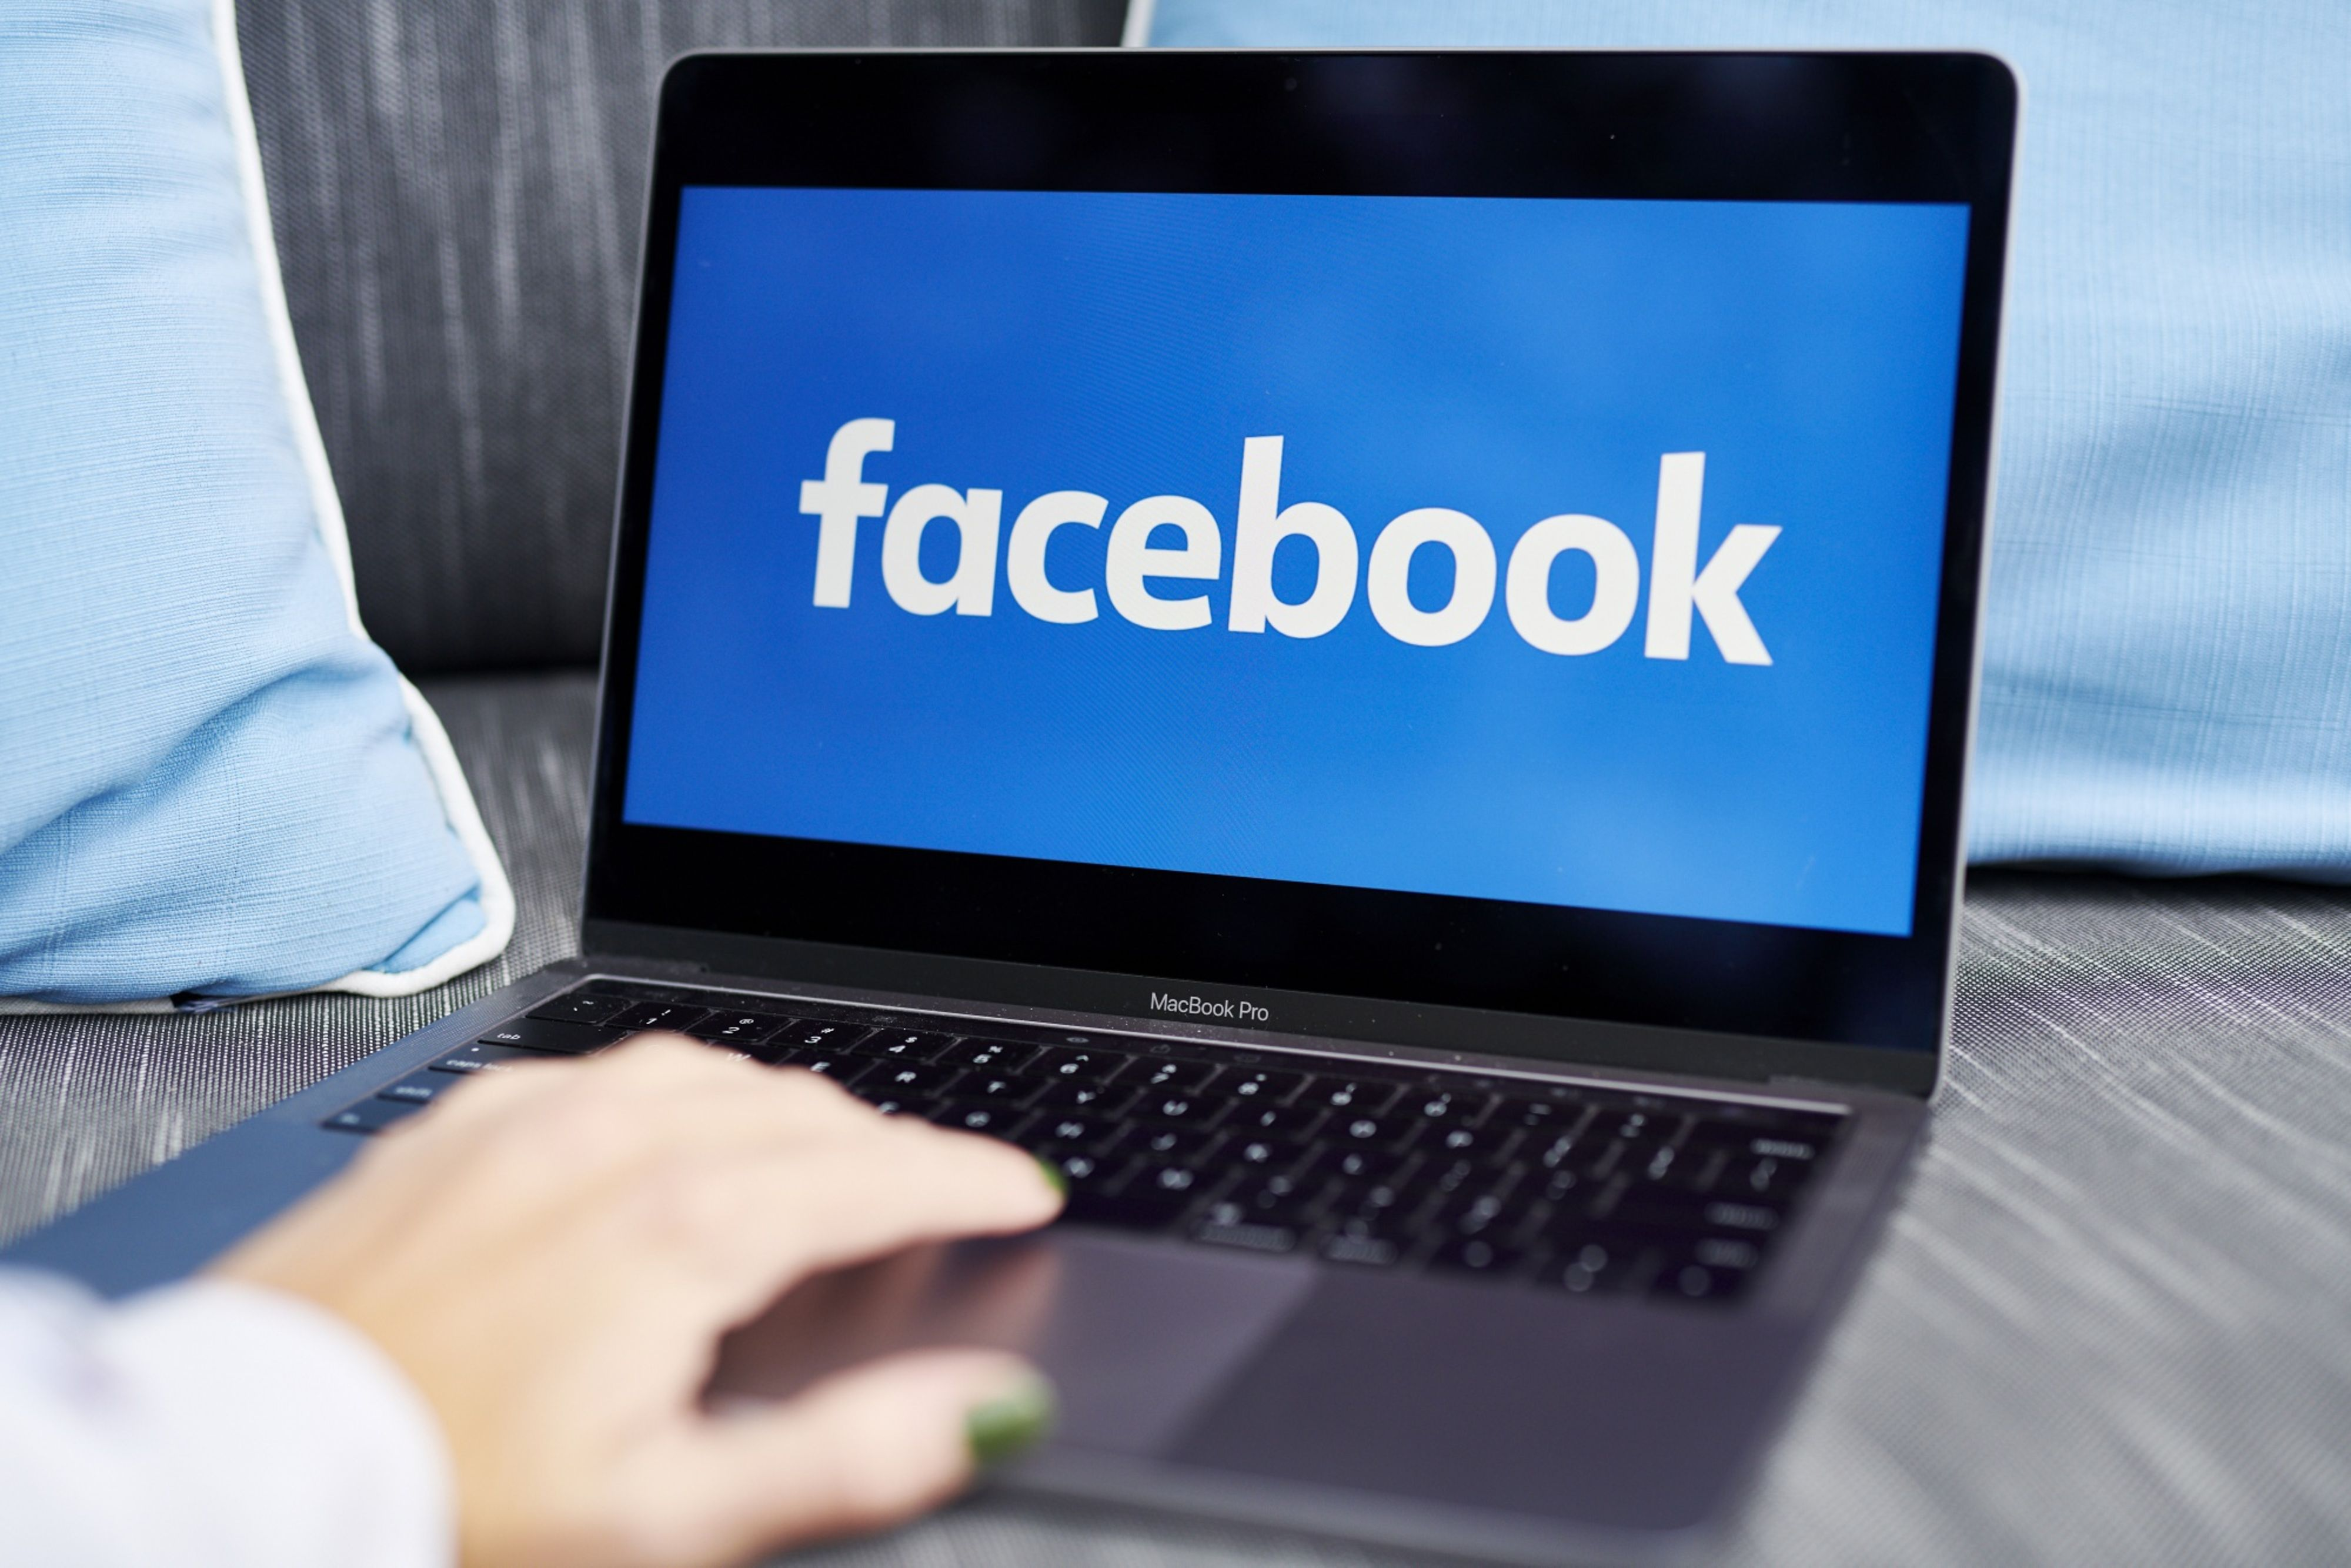 Facebook Faces Uk Legal Action Involving Cambridge Analytica Scandal So can you have multiple facebook accounts? https www insurancejournal com news international 2020 10 29 588656 htm